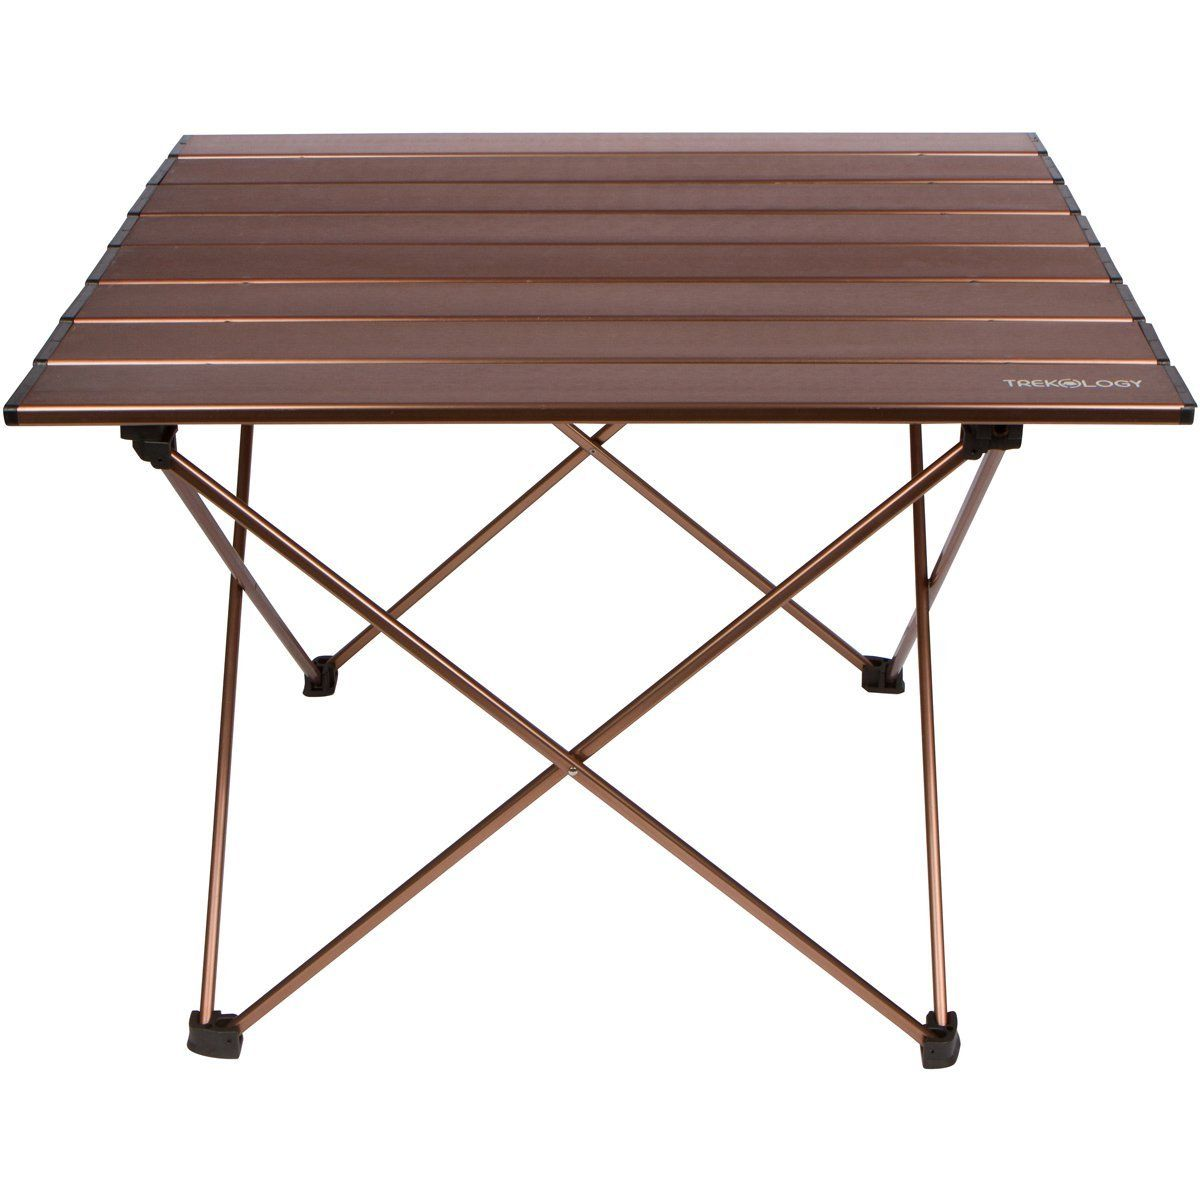 Awesome Trekology Portable Camping Table With Aluminum Table Top, Hard Topped  Folding Table In A Bag For Picnic, Camp, Beach, Useful For Dining, Cutting,  ...